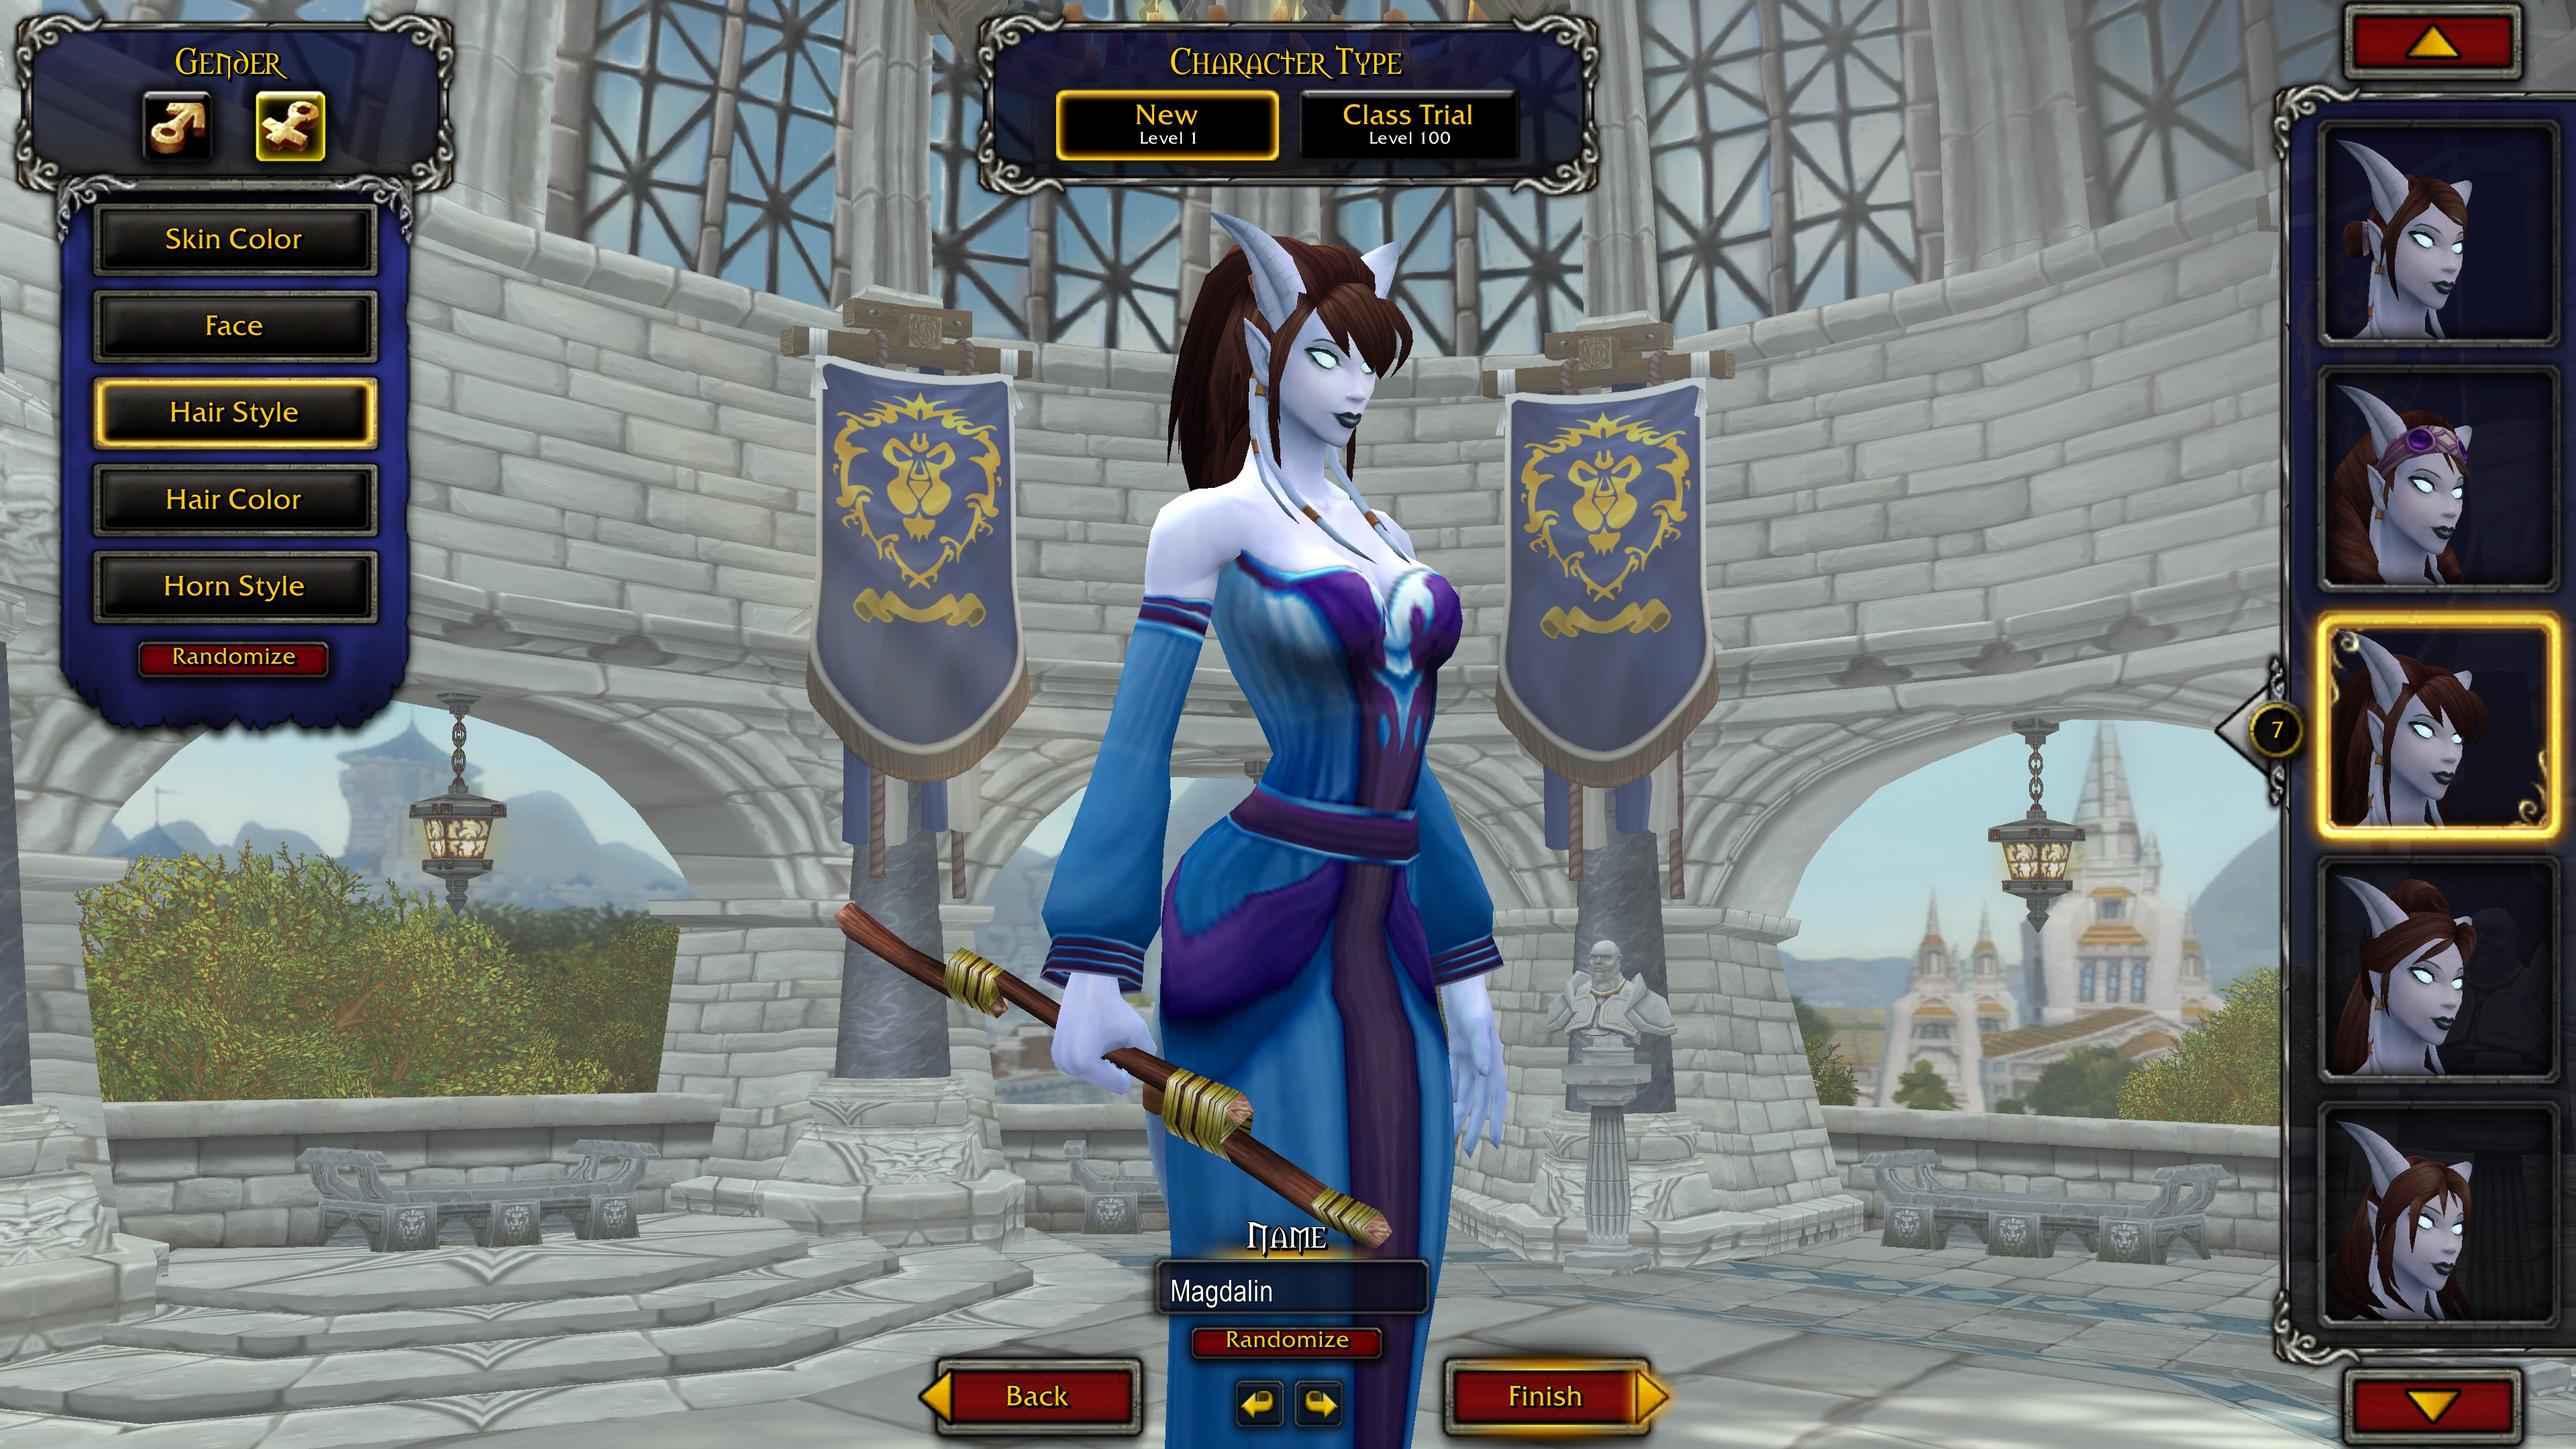 Character Customization in World of Warcraft